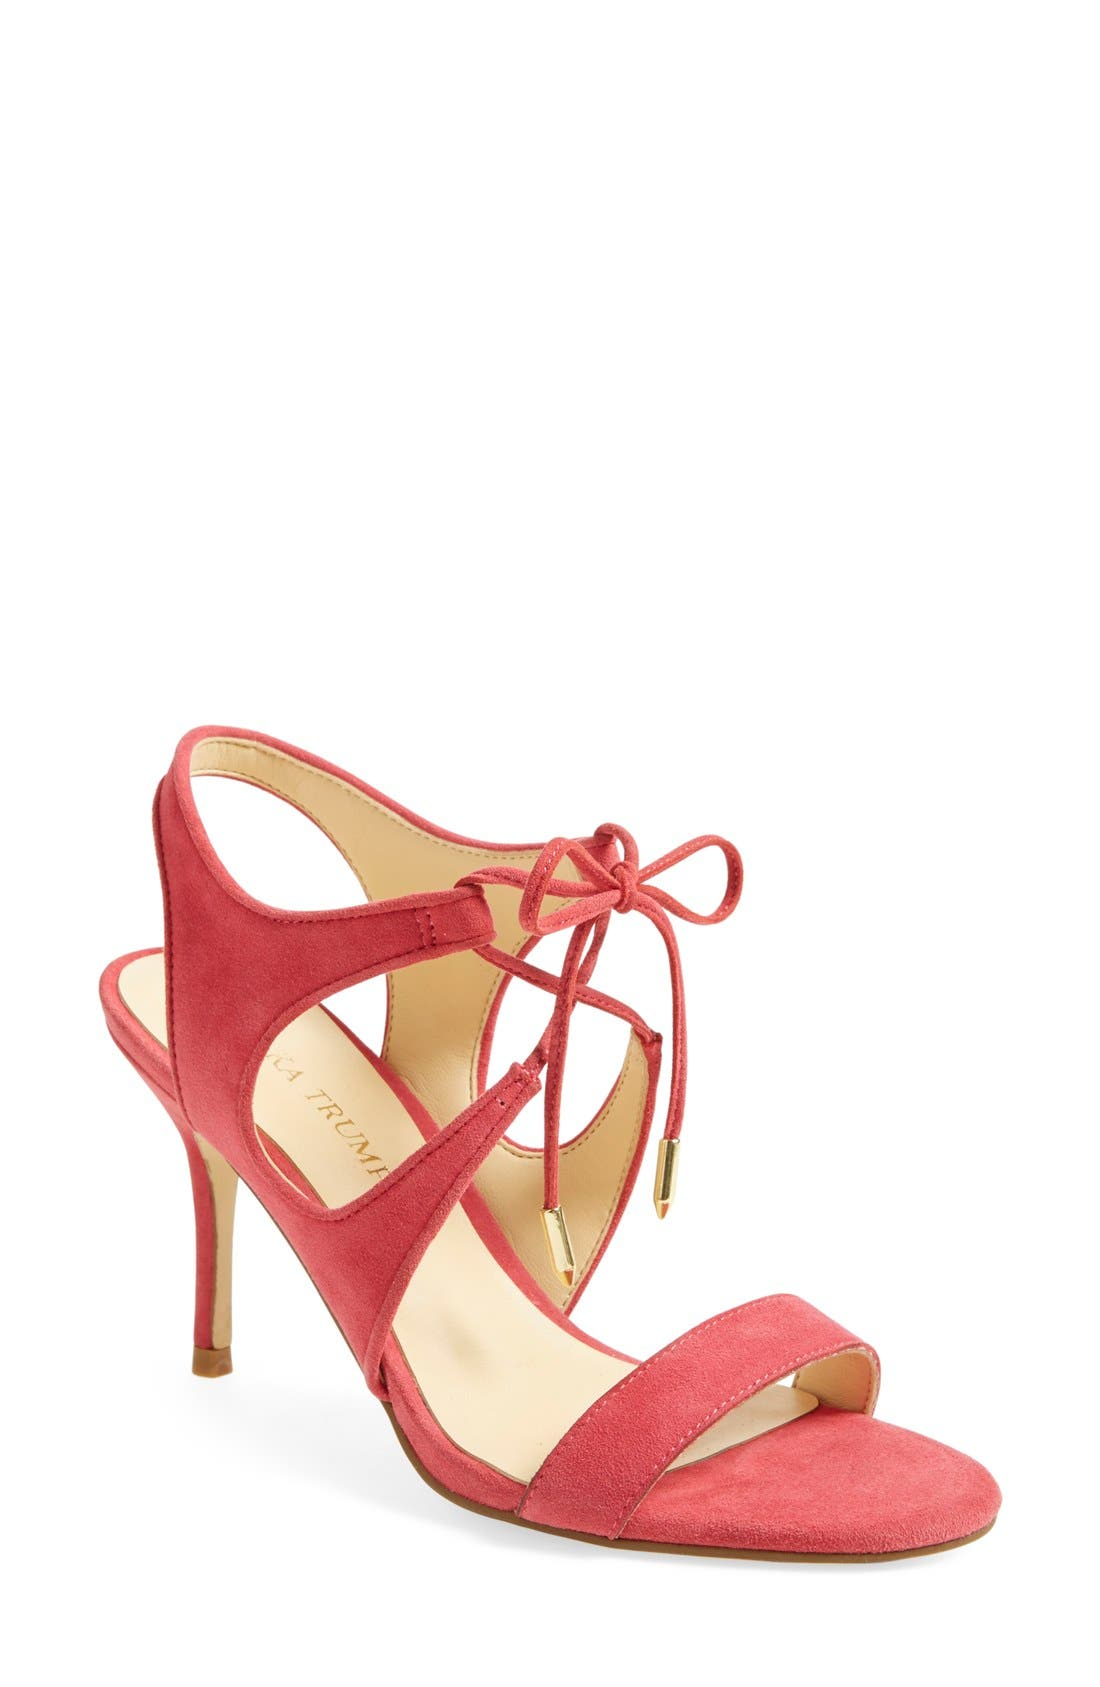 Alternate Image 1 Selected - Ivanka Trump 'Garver' Sandal (Women)